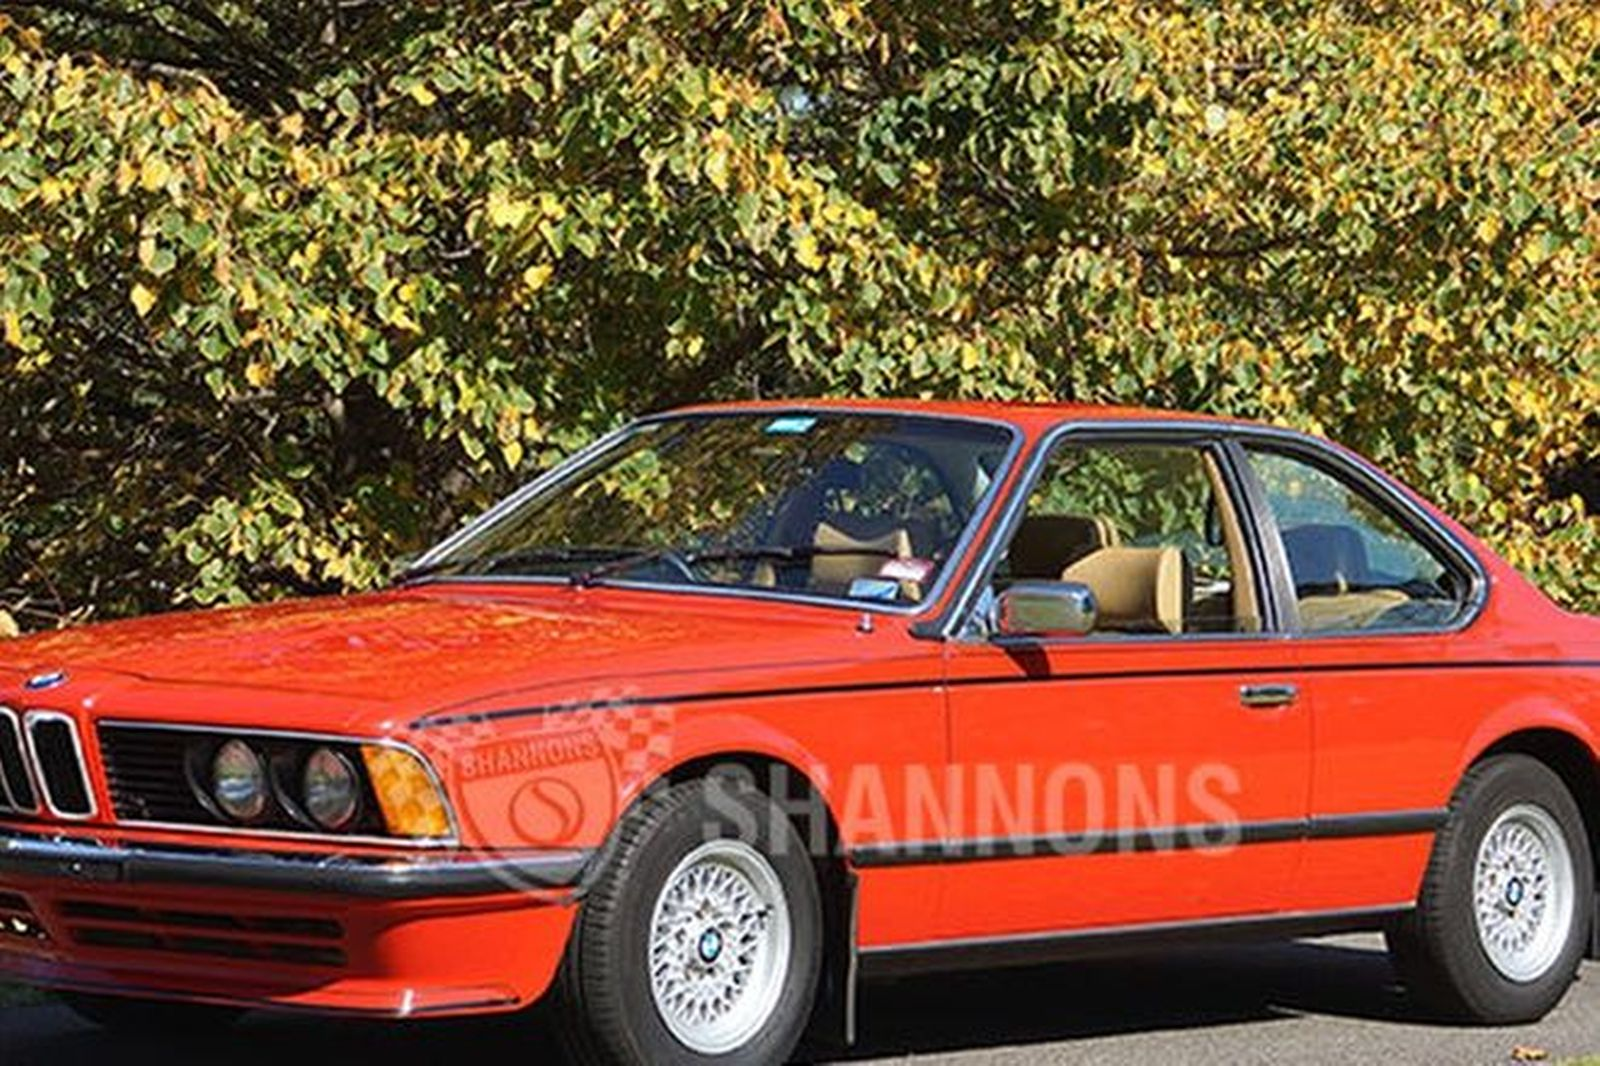 Sold BMW CSi Coupe Auctions Lot Shannons - 1977 bmw